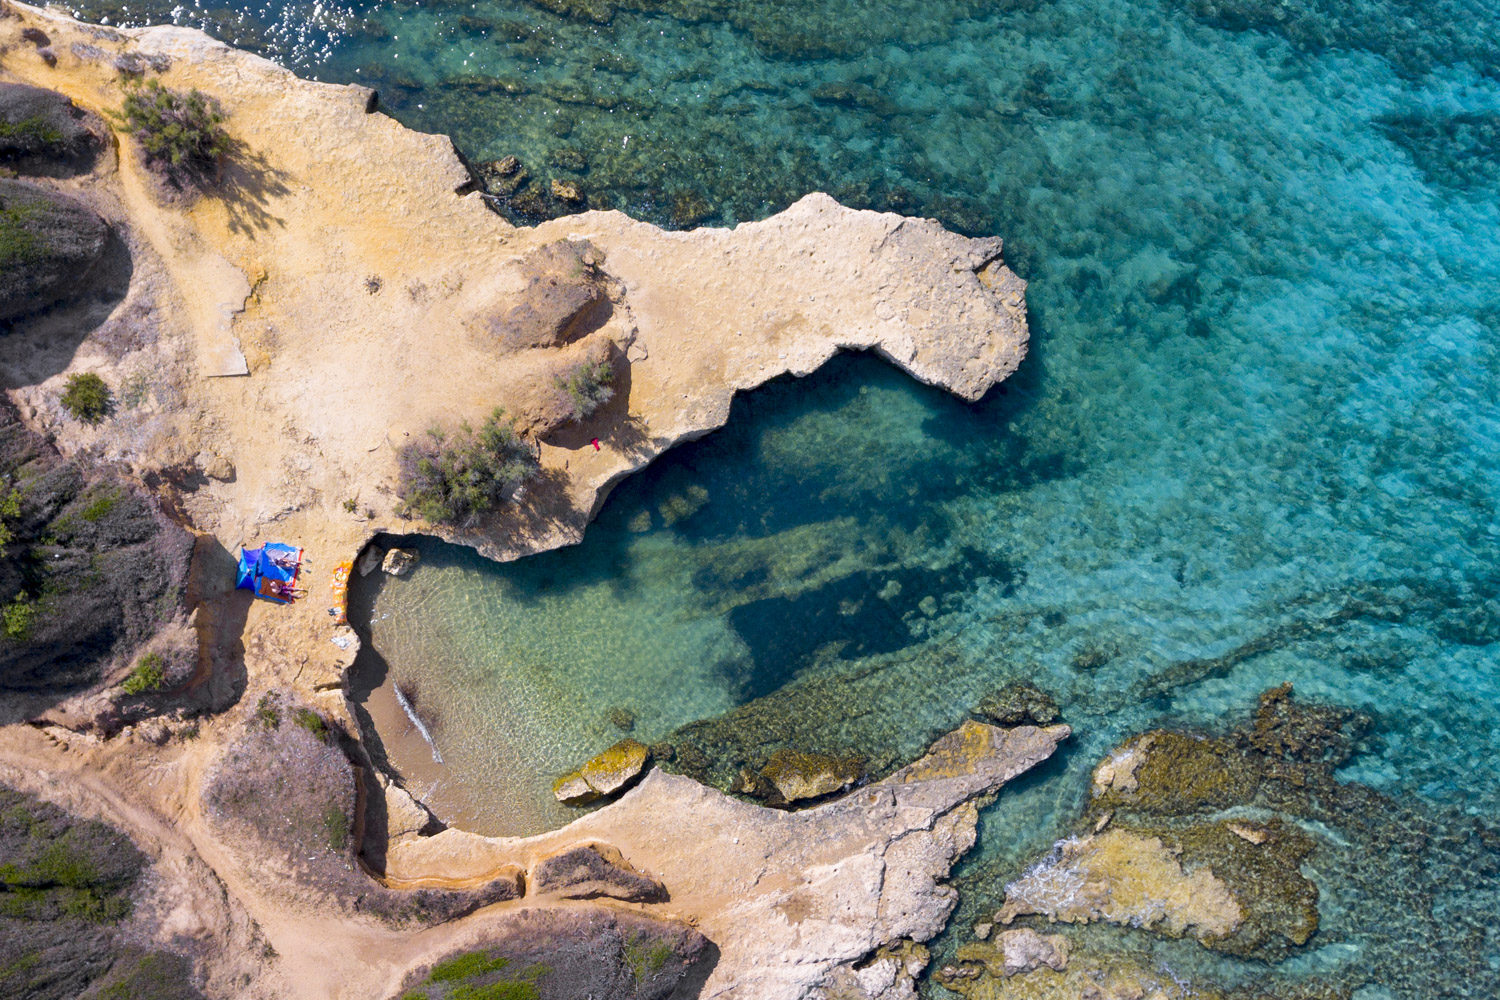 Aerial Photography of Puglia Region, Italy by Joas Souza Photographer - All Rights Reserved.